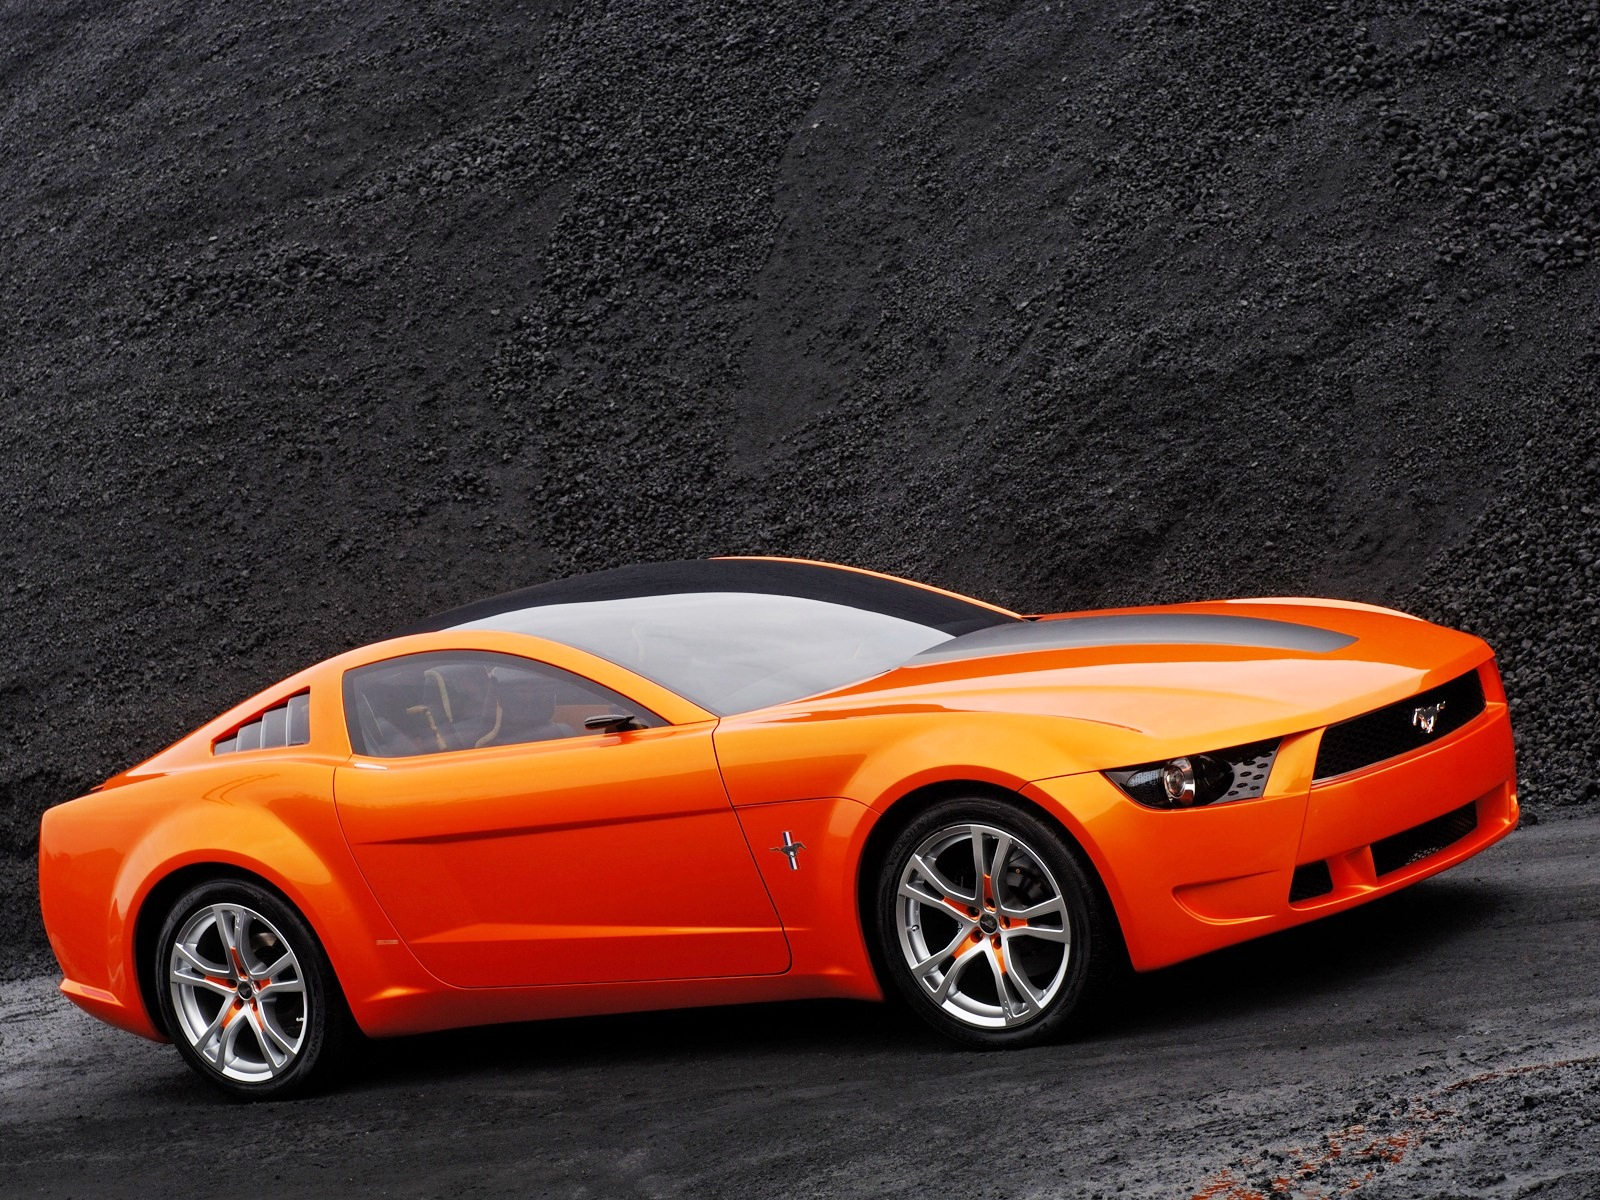 2014 Ford Mustang New HD Wallpaper of Car   hdwallpaper2013com 1600x1200